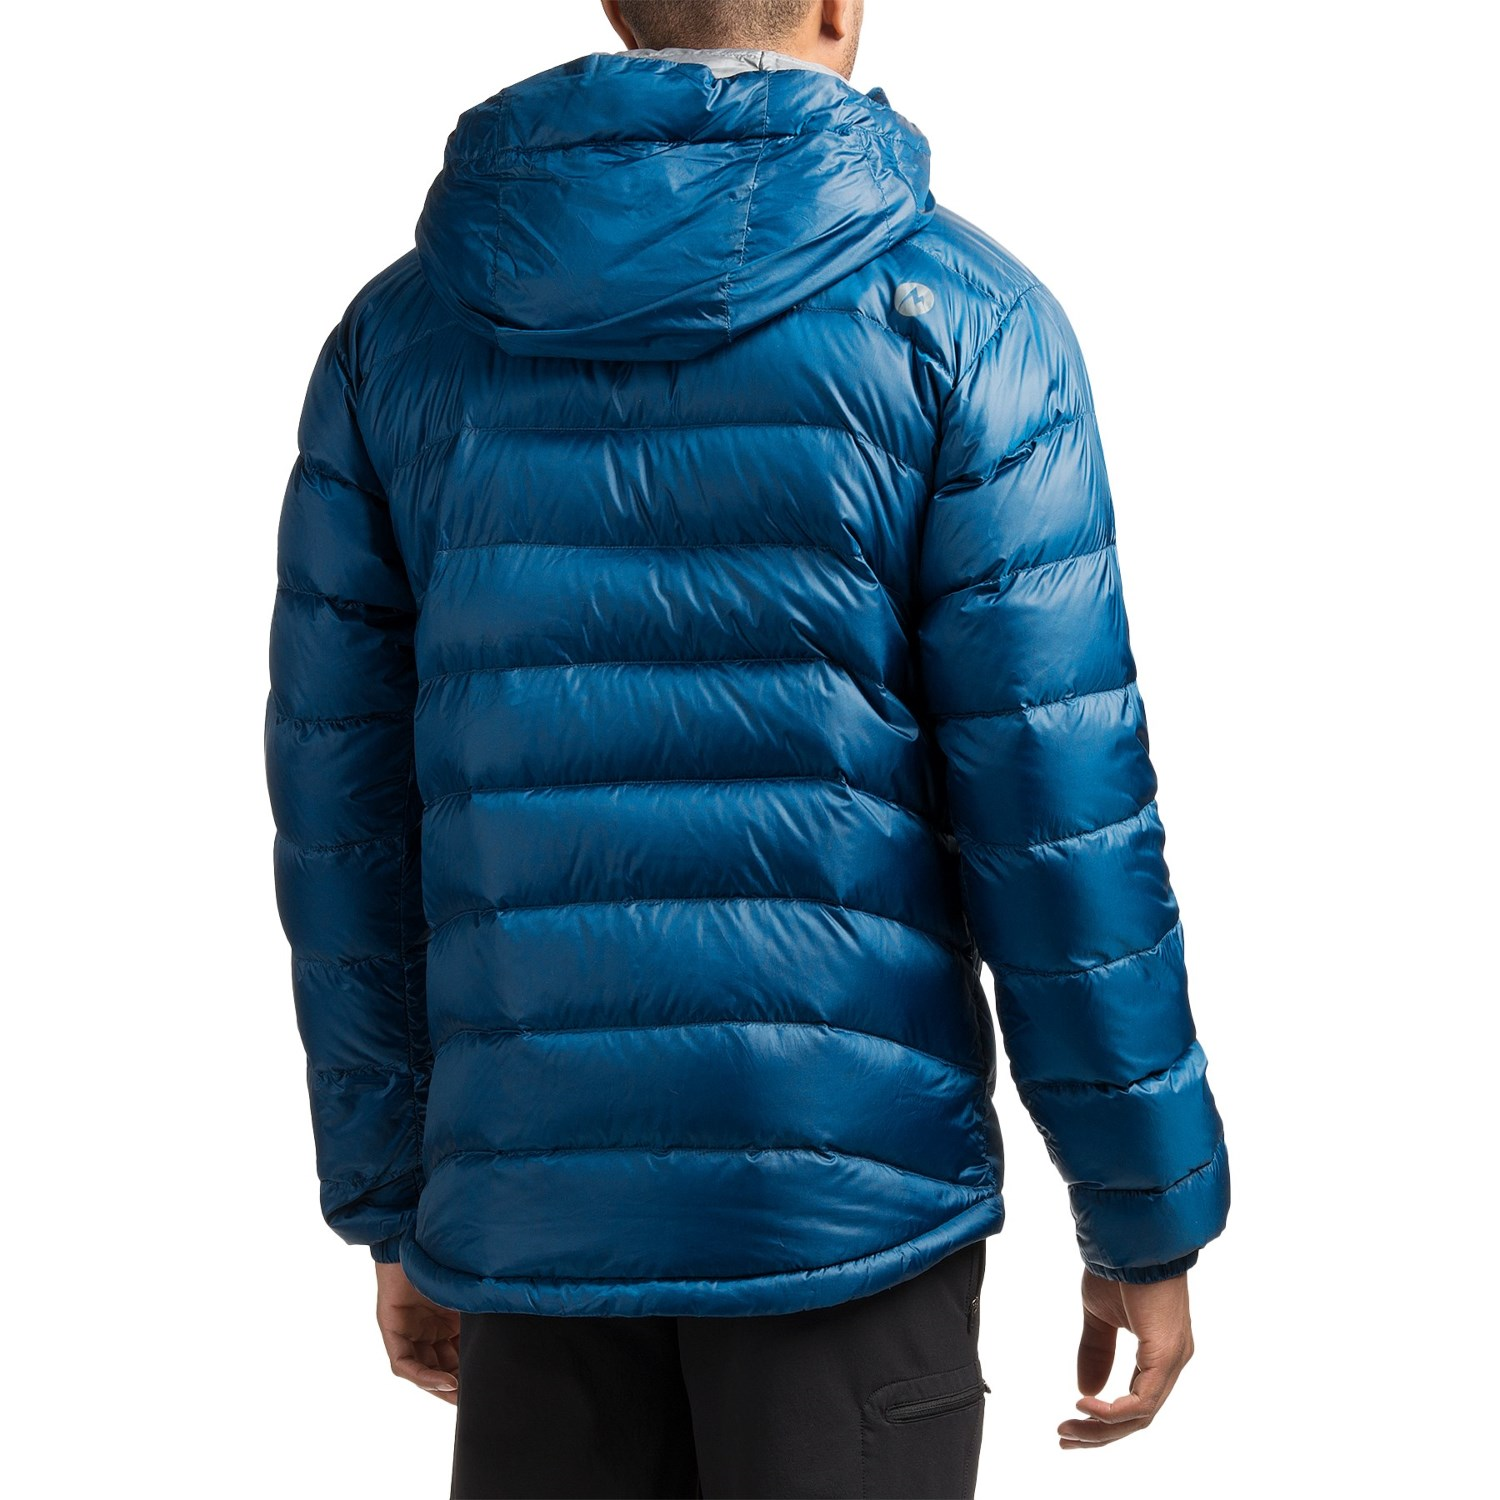 800 down fill jacket jackets review